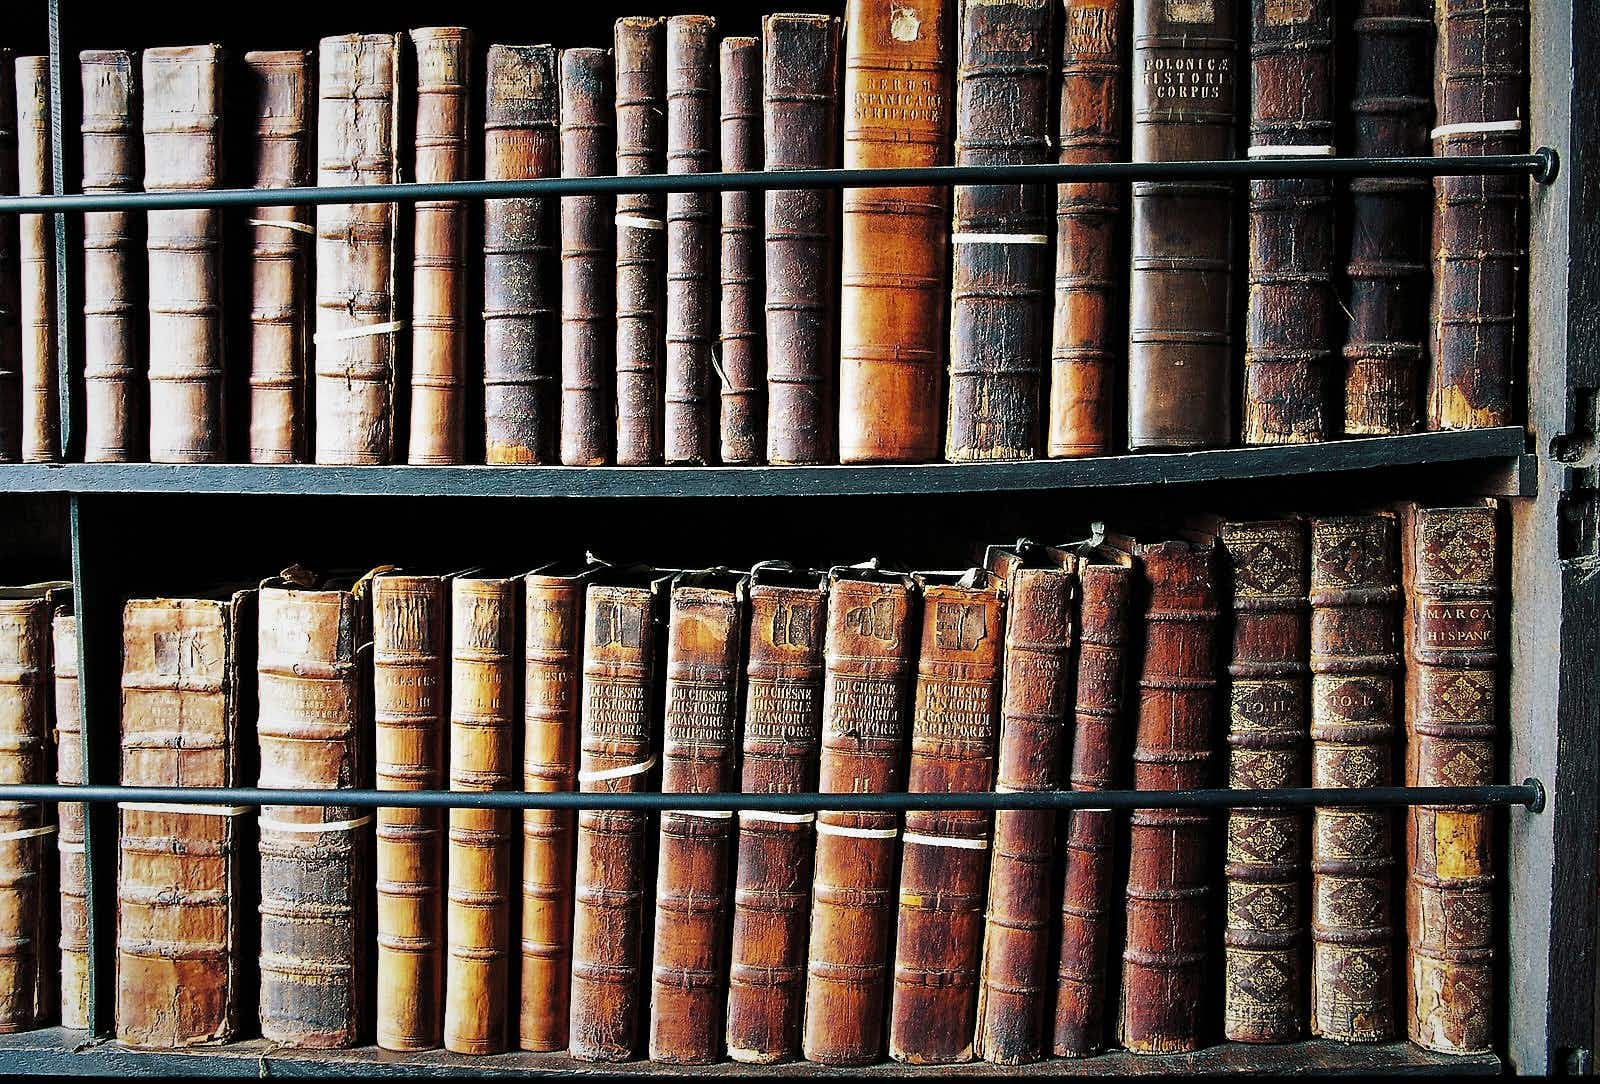 Dublin by the book: a literary tour of Ireland's capital